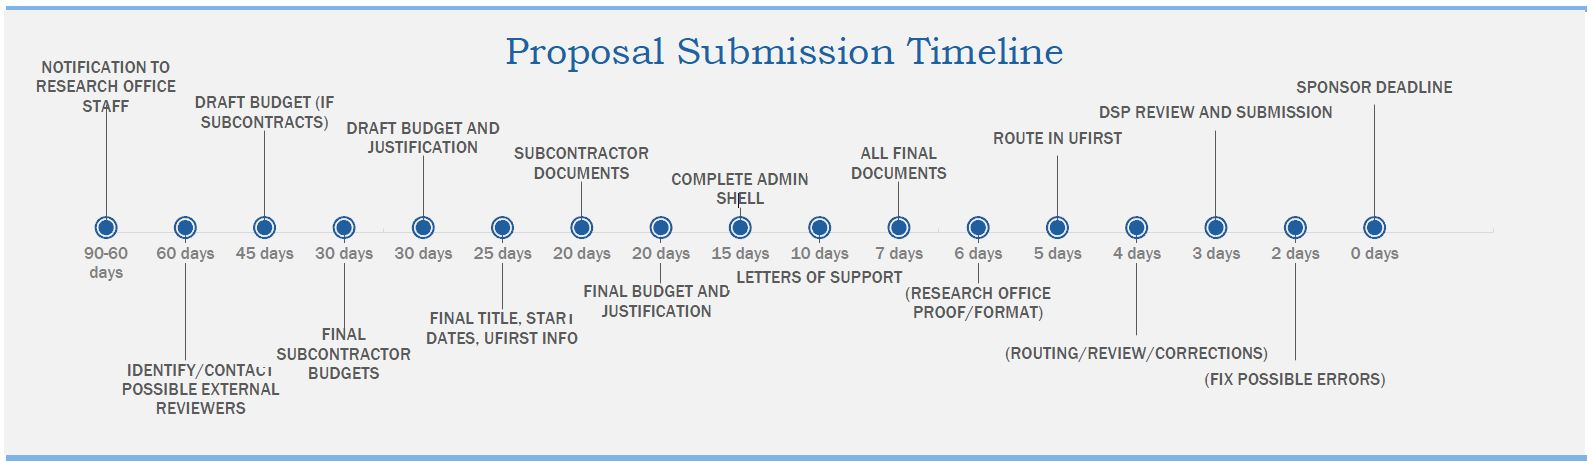 Research Proposal Submission Timeline